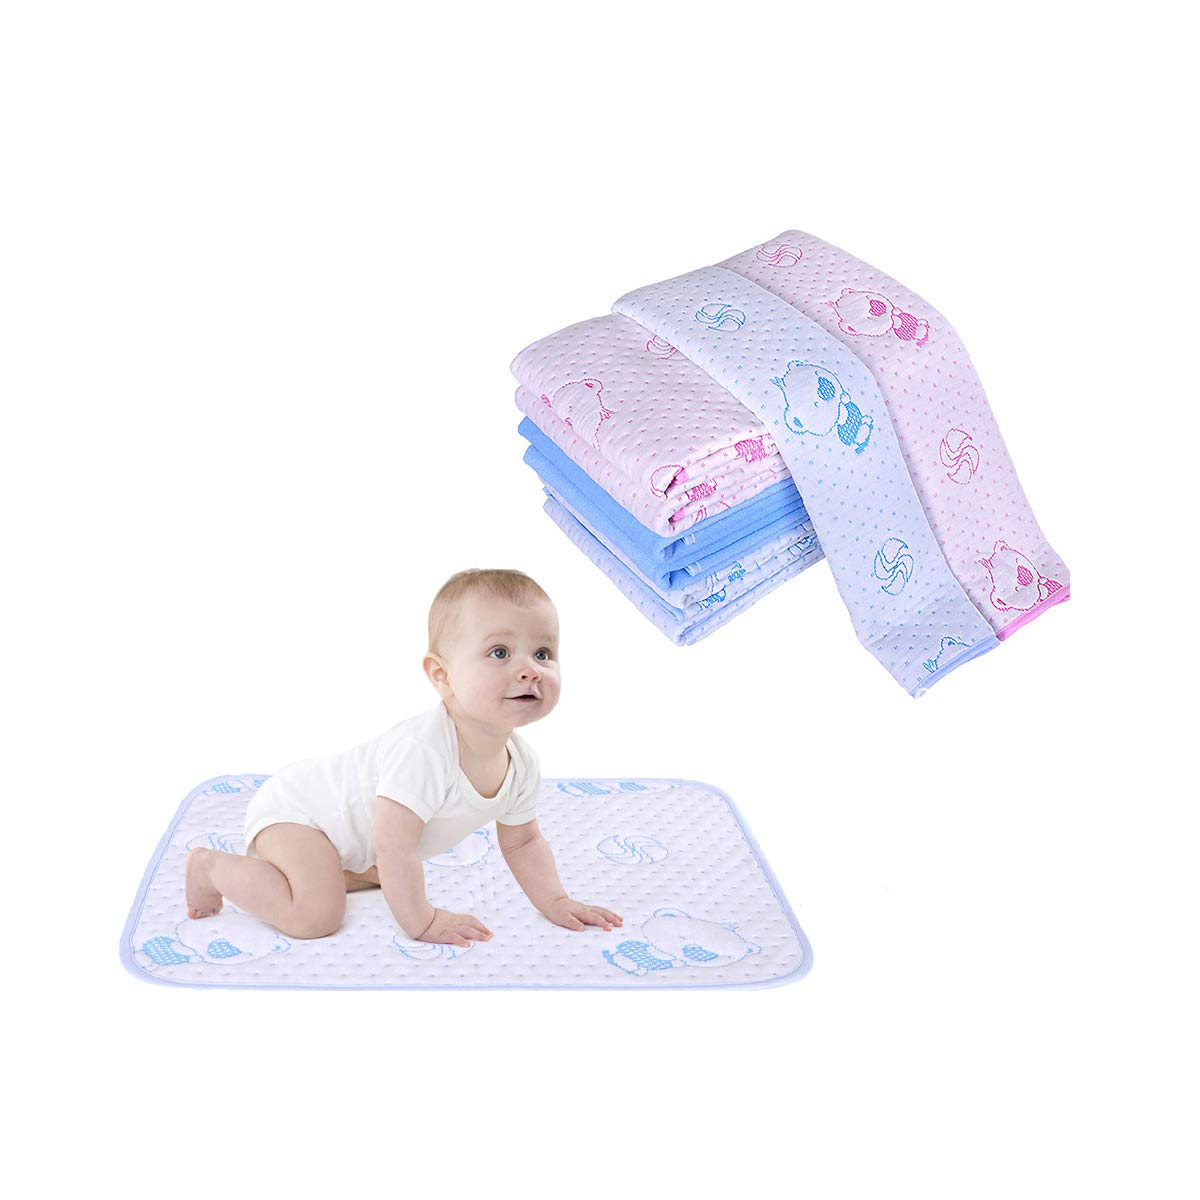 Blue Toddler Mattress Pad Reusable Cotton Bamboo Fiber Breathable Waterproof Baby Changing Mat Incontinence Bed Cover,19.7x27.6 Women Menstrual Period Leakproof Underpad Postpartum Protector Sheet